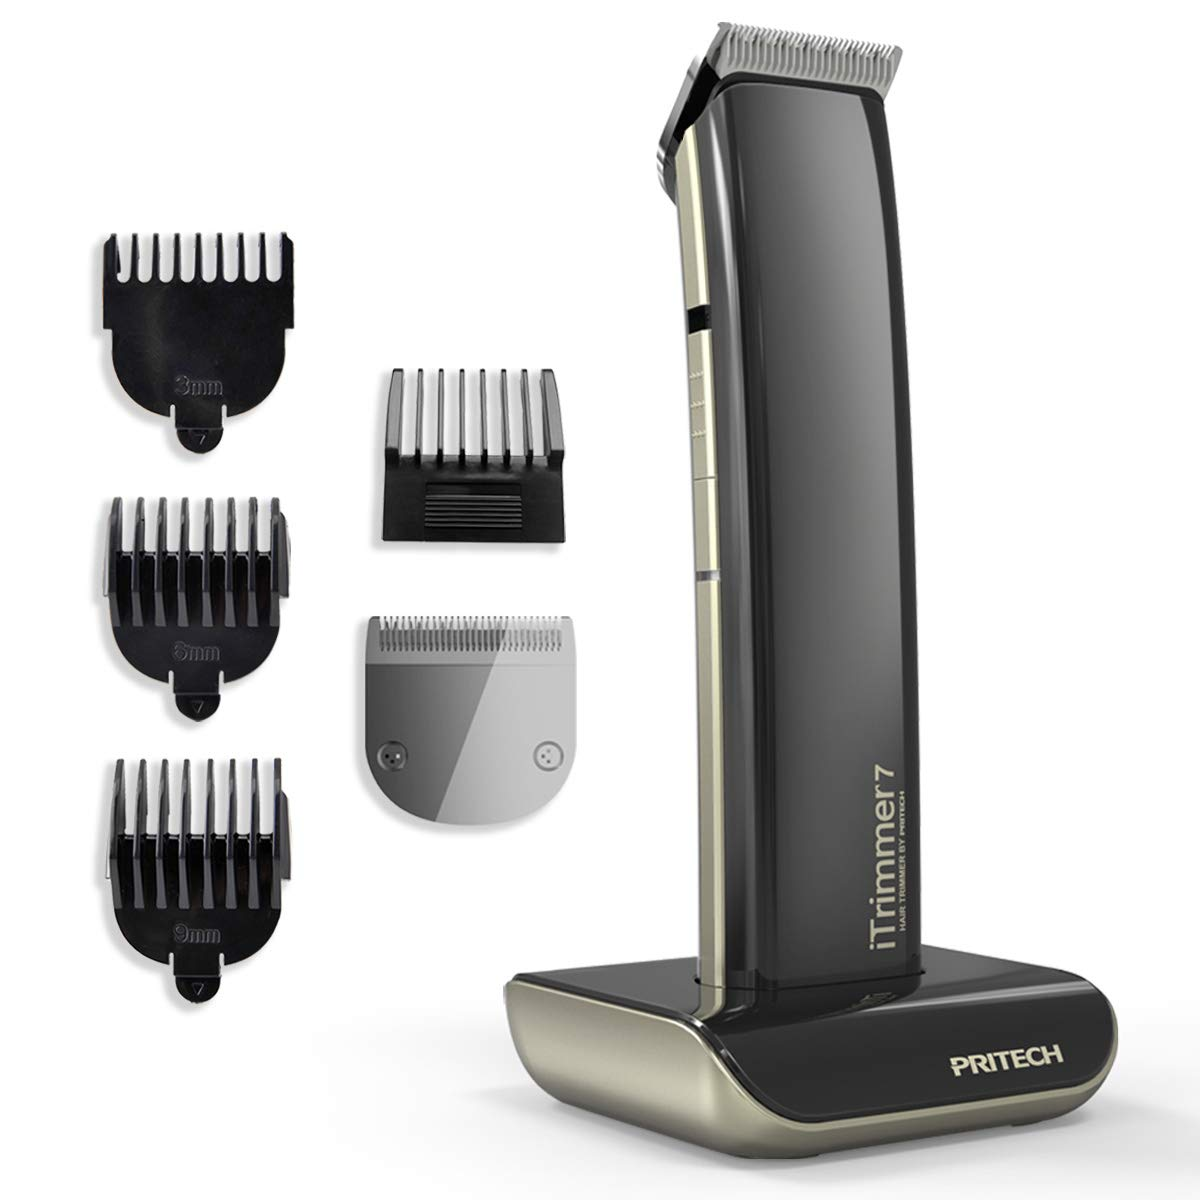 Electric Hair Clipper Cordless Beard Trimmer for Men USB Rechargeable Grooming Haircut Kit Beard and Mustache Shaver Black